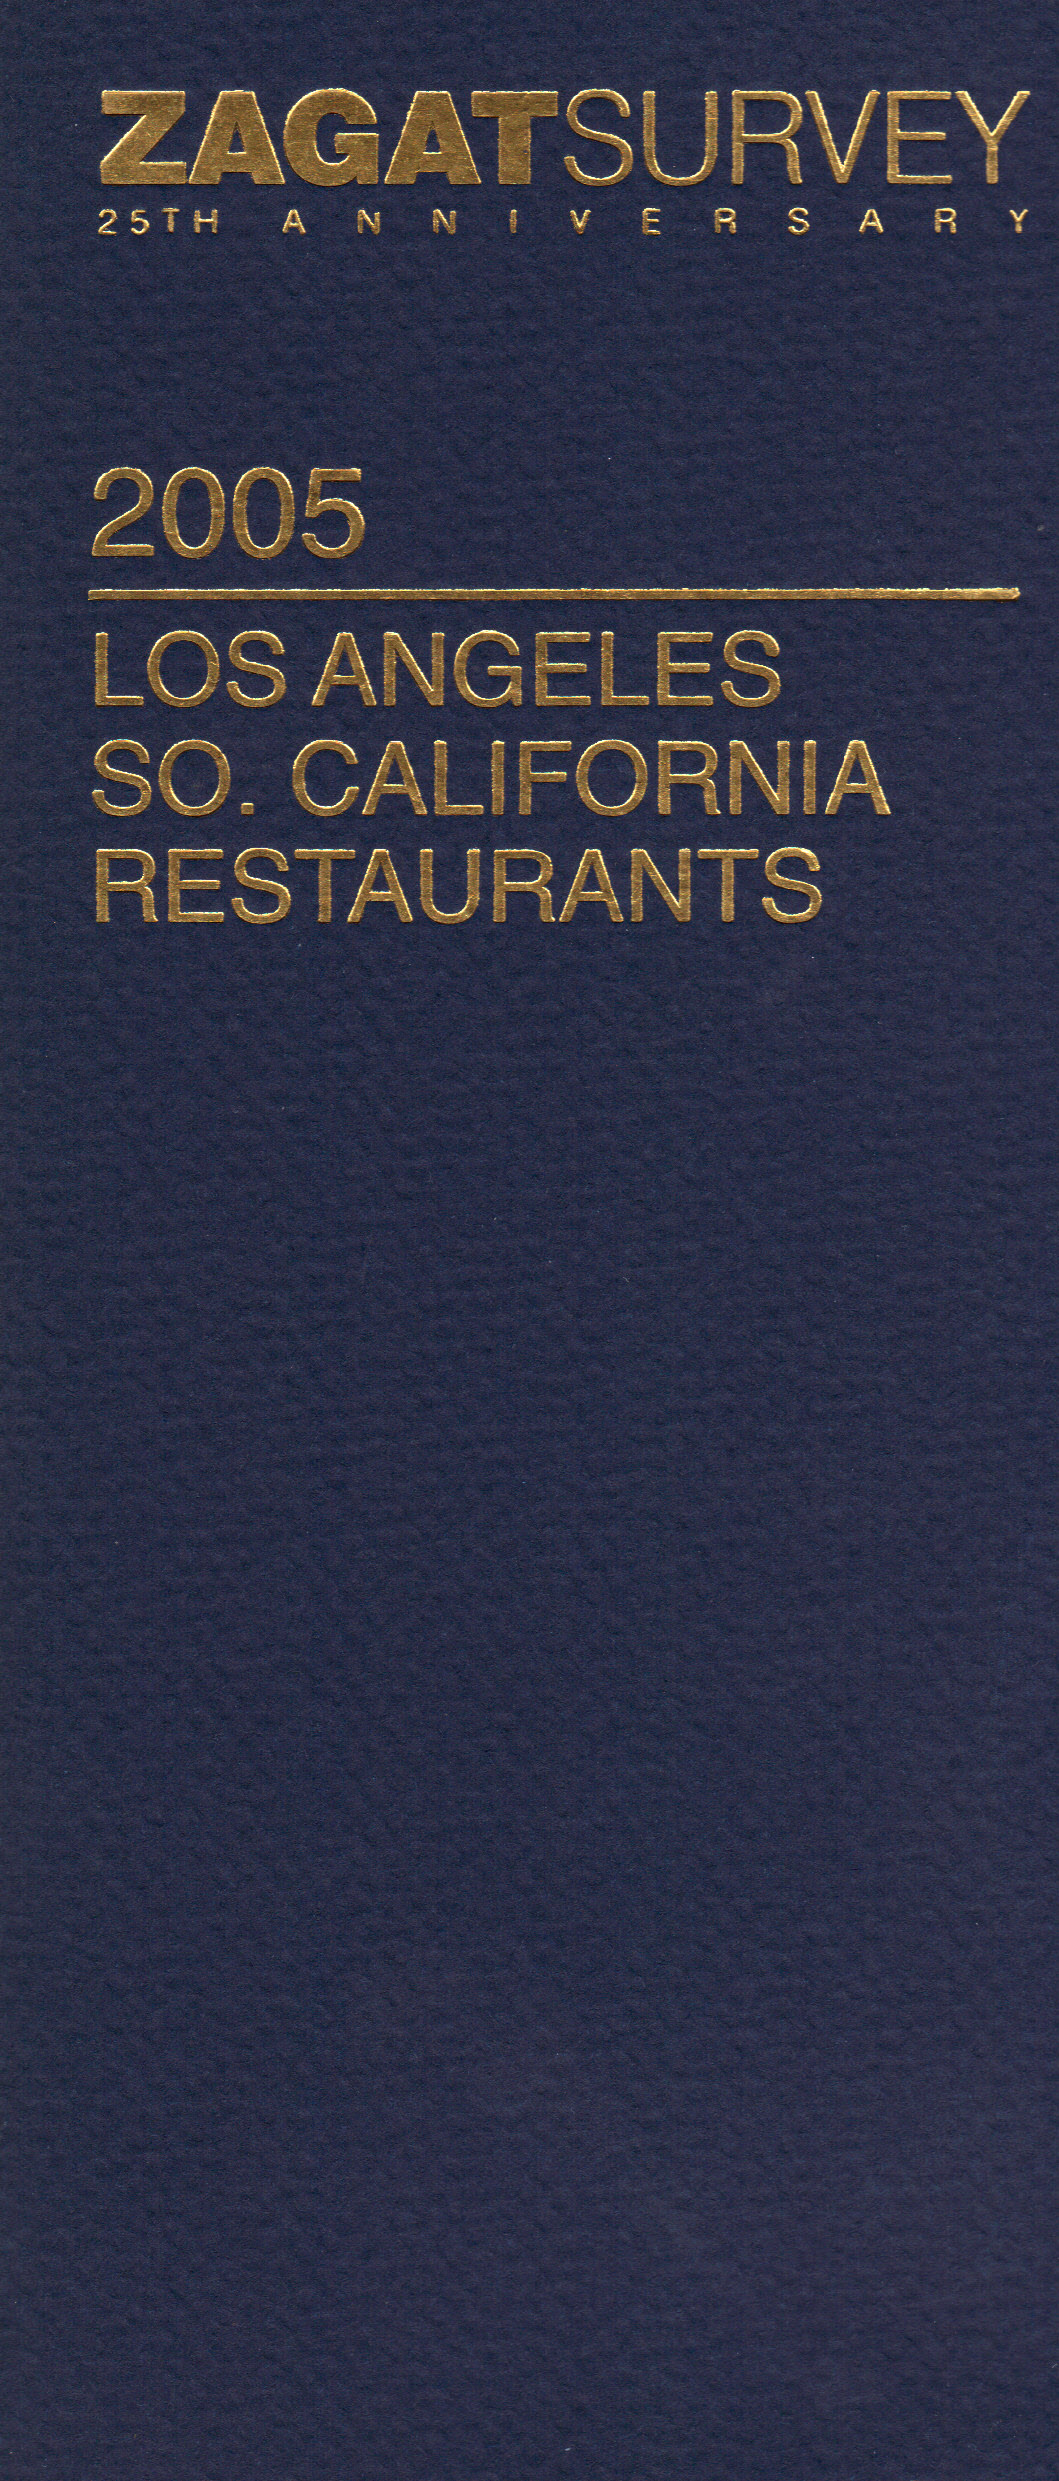 Image for 2005 LOS ANGELES SO. CALIFORNIA RESTAURANTS